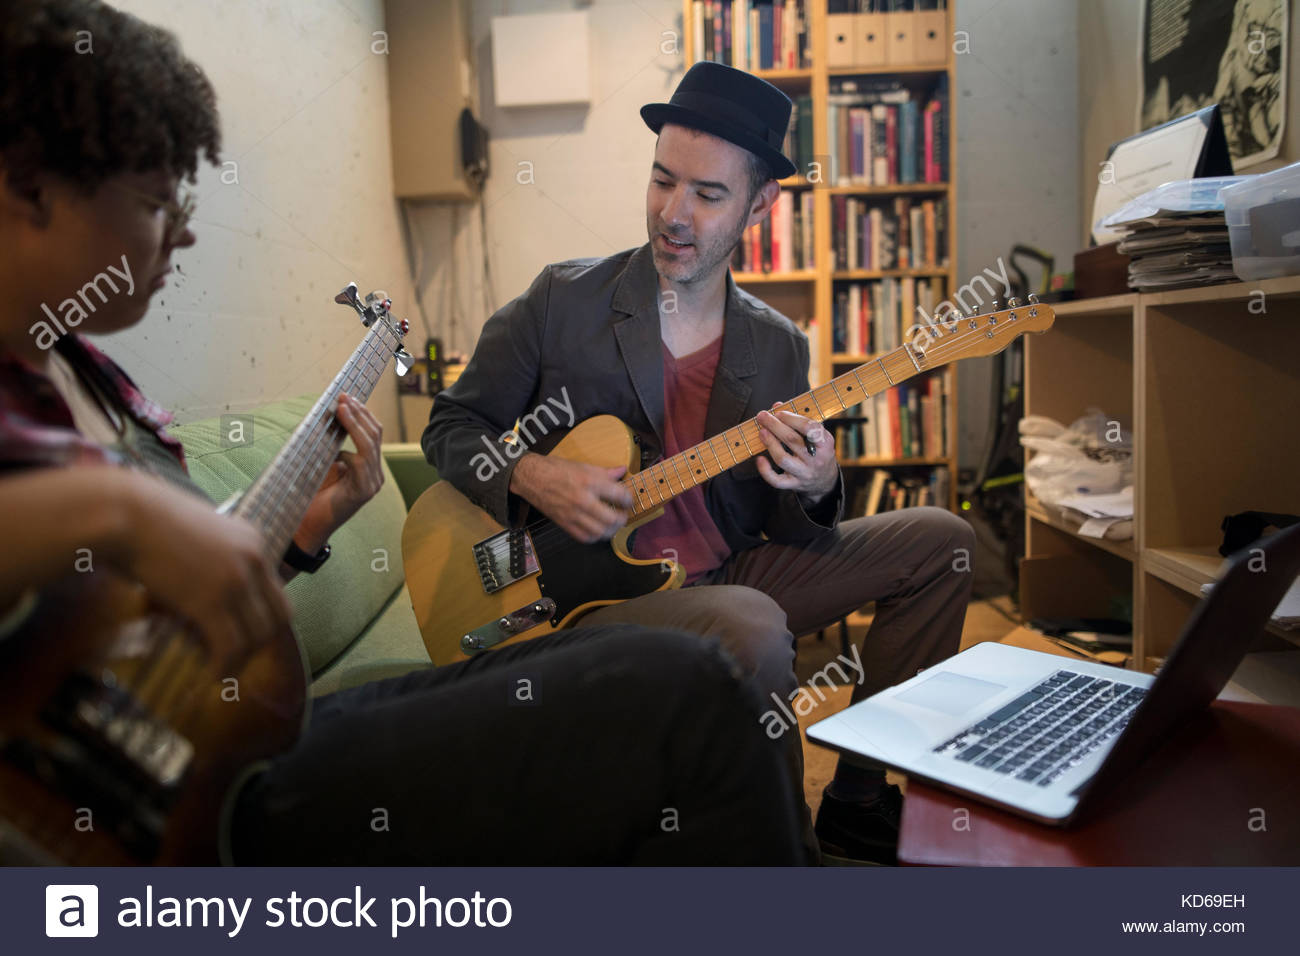 Musicians playing guitars at laptop in apartment - Stock Image